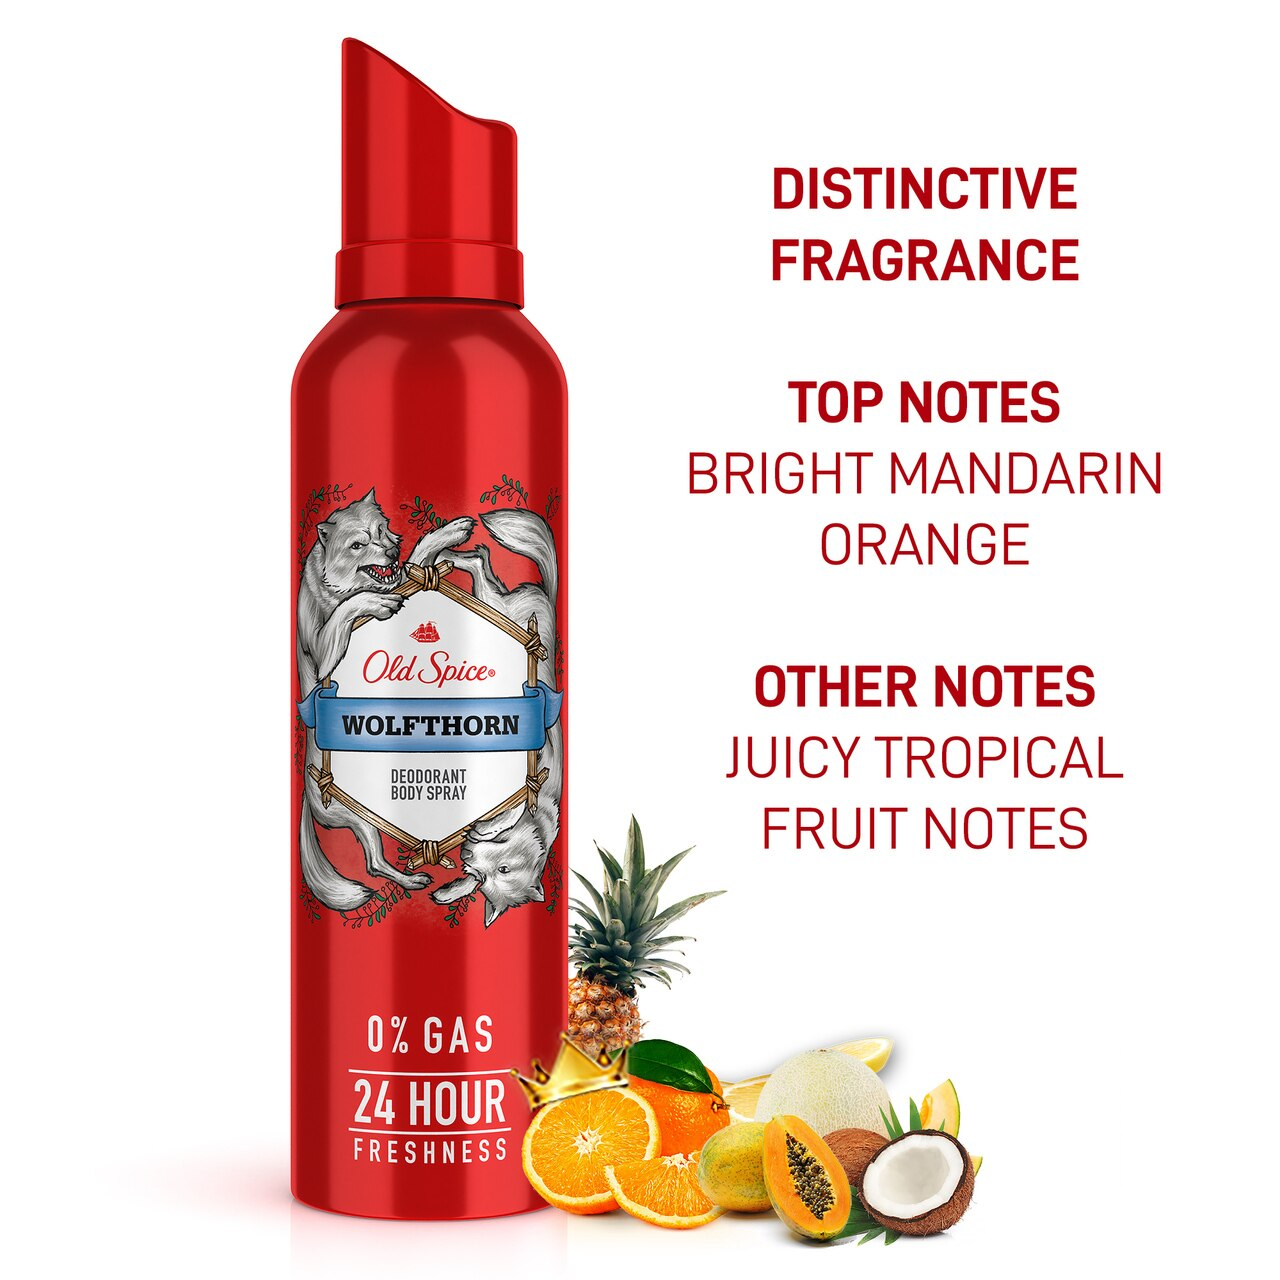 Old Spice- Wolfthorn No Gas Deodorant Body Spray Perfume, 140 ml